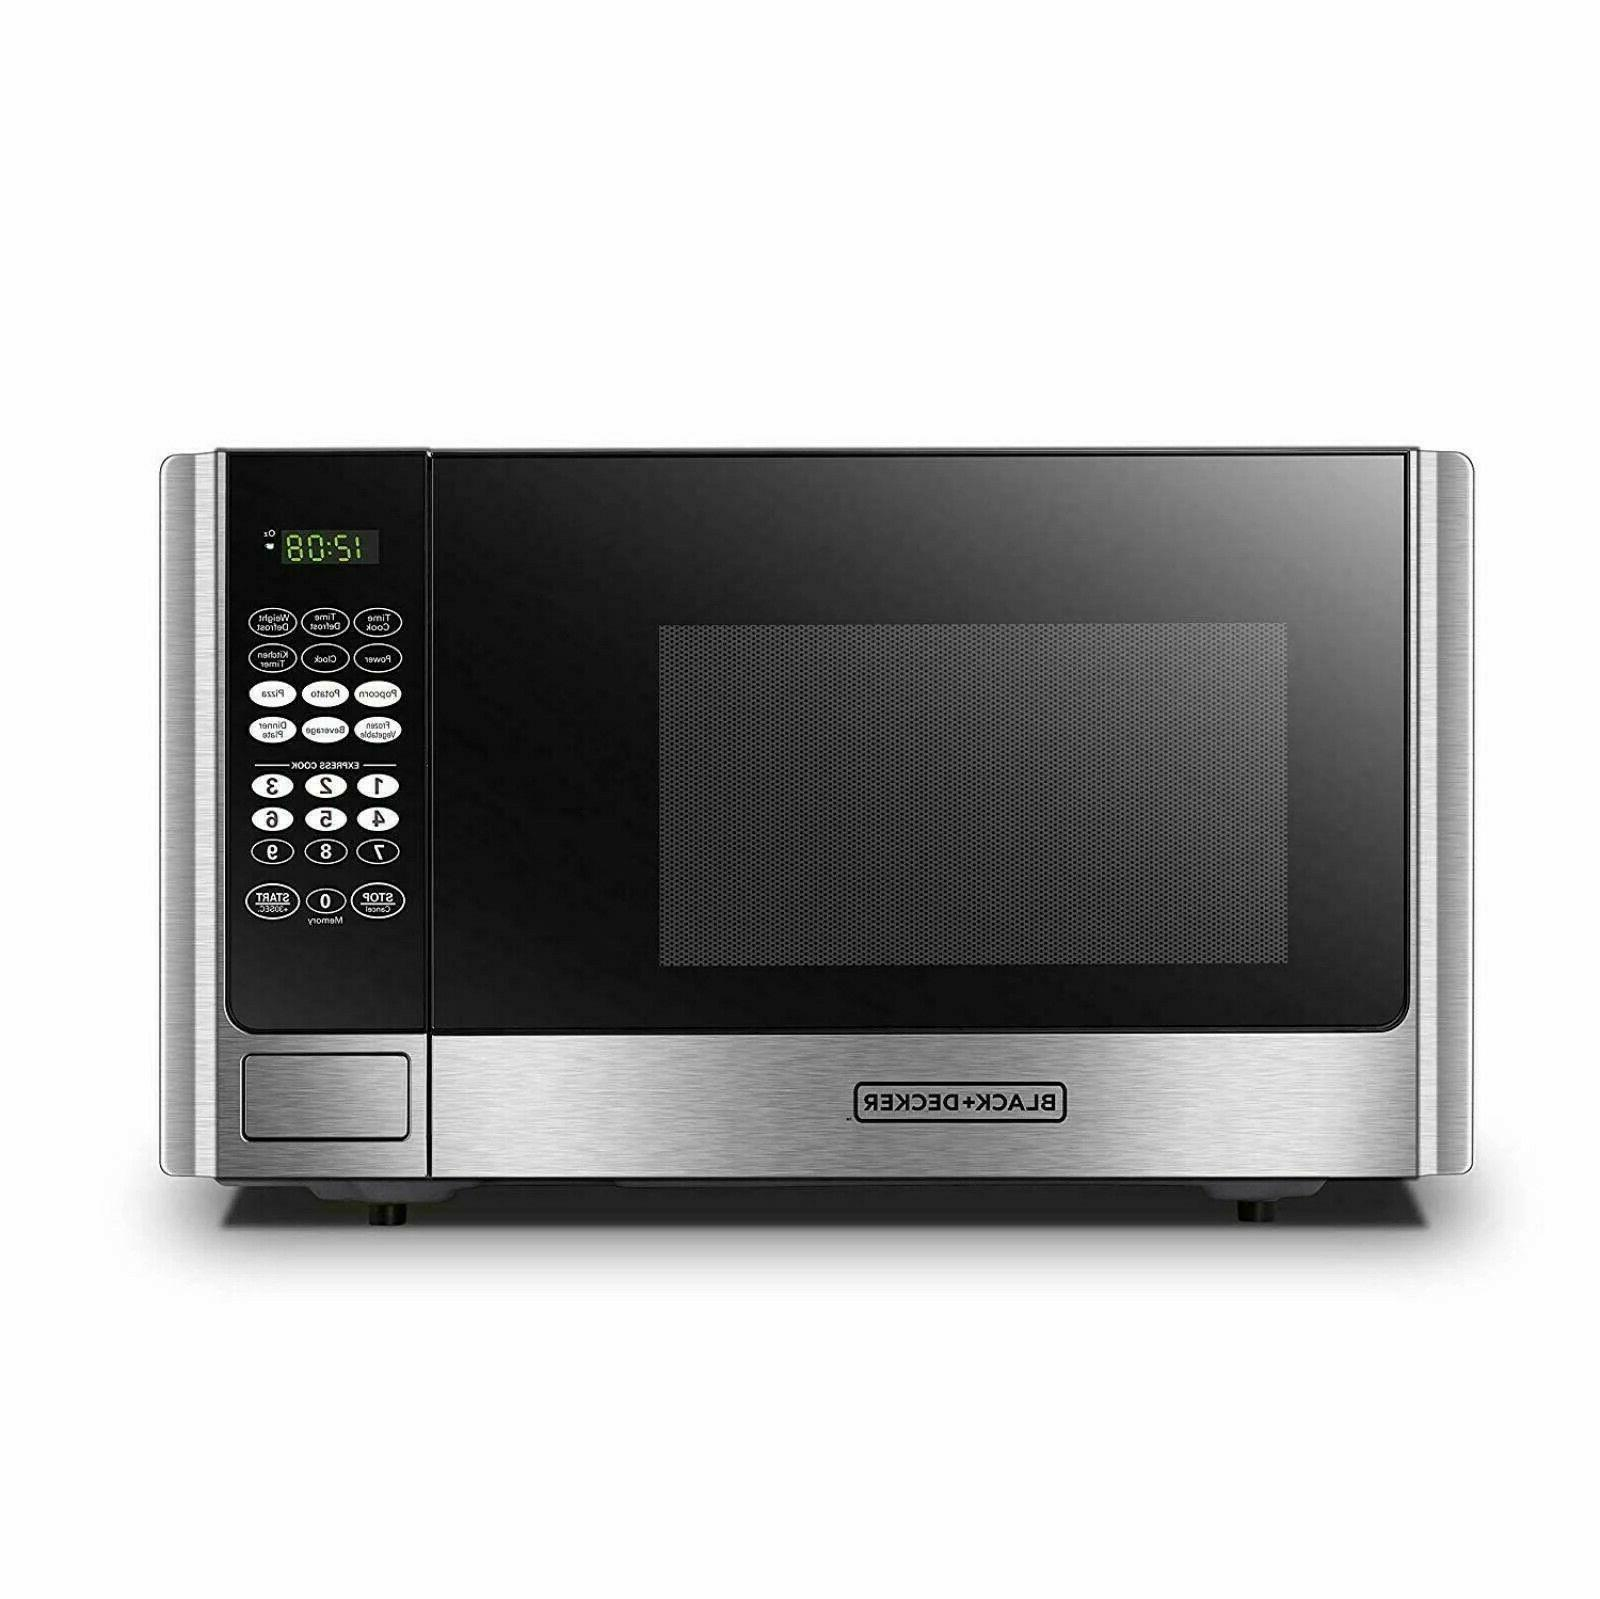 black decker digital microwave oven with turntable